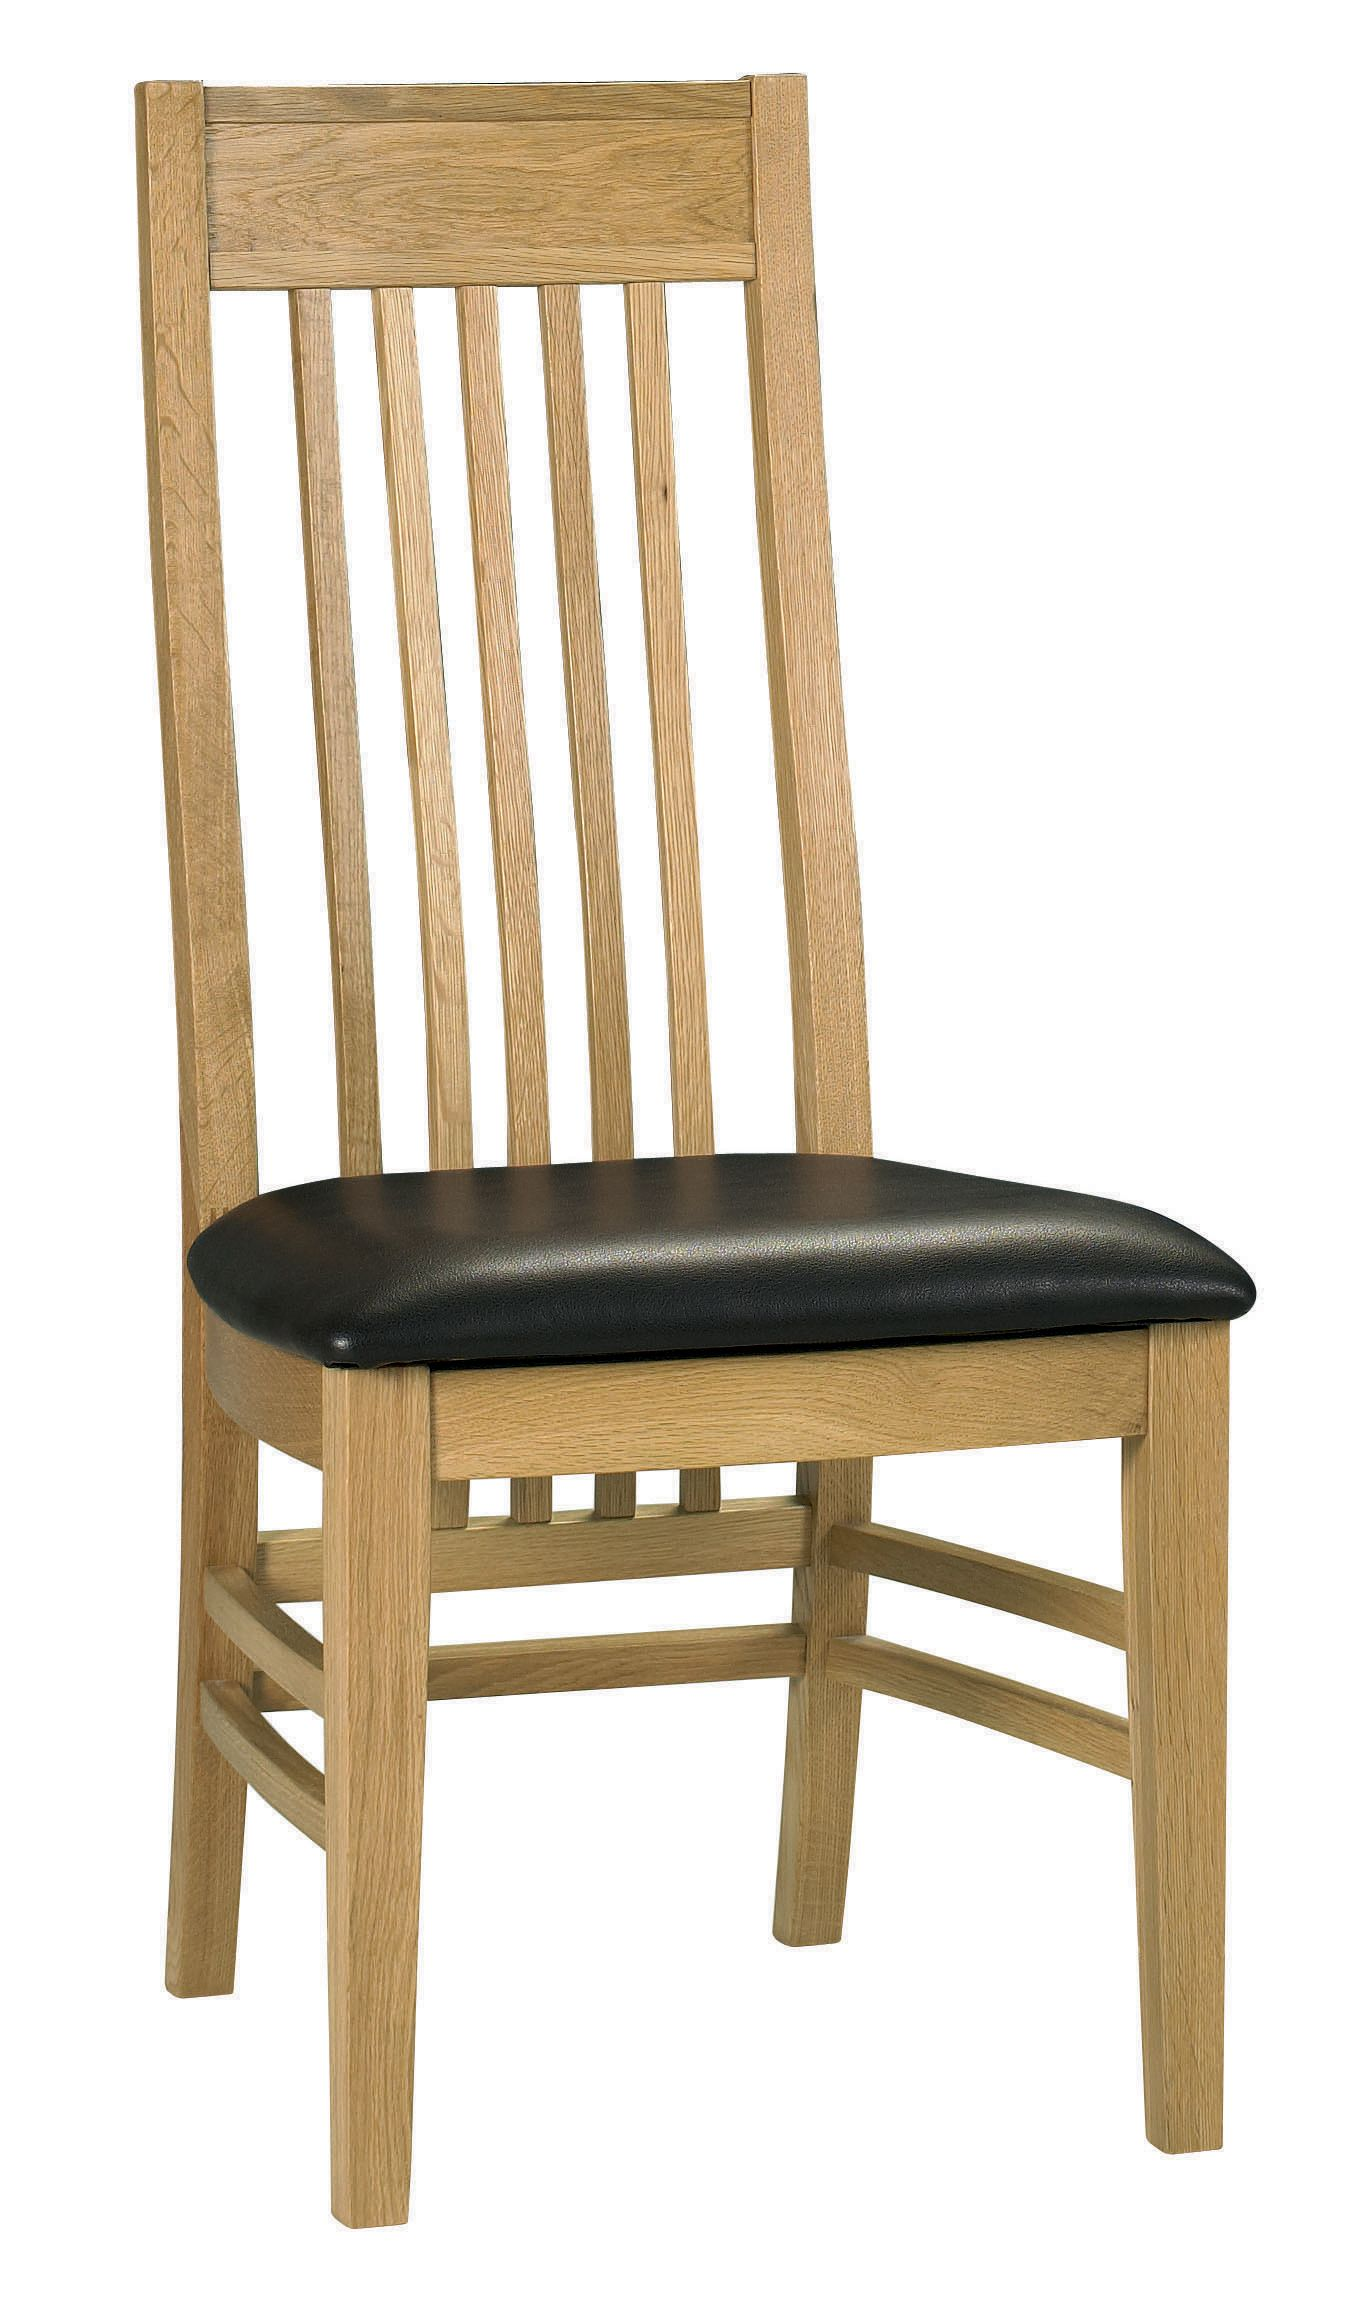 https://www.firstfurniture.co.uk/pub/media/catalog/product/7/2/7258-09SP-C1.jpg